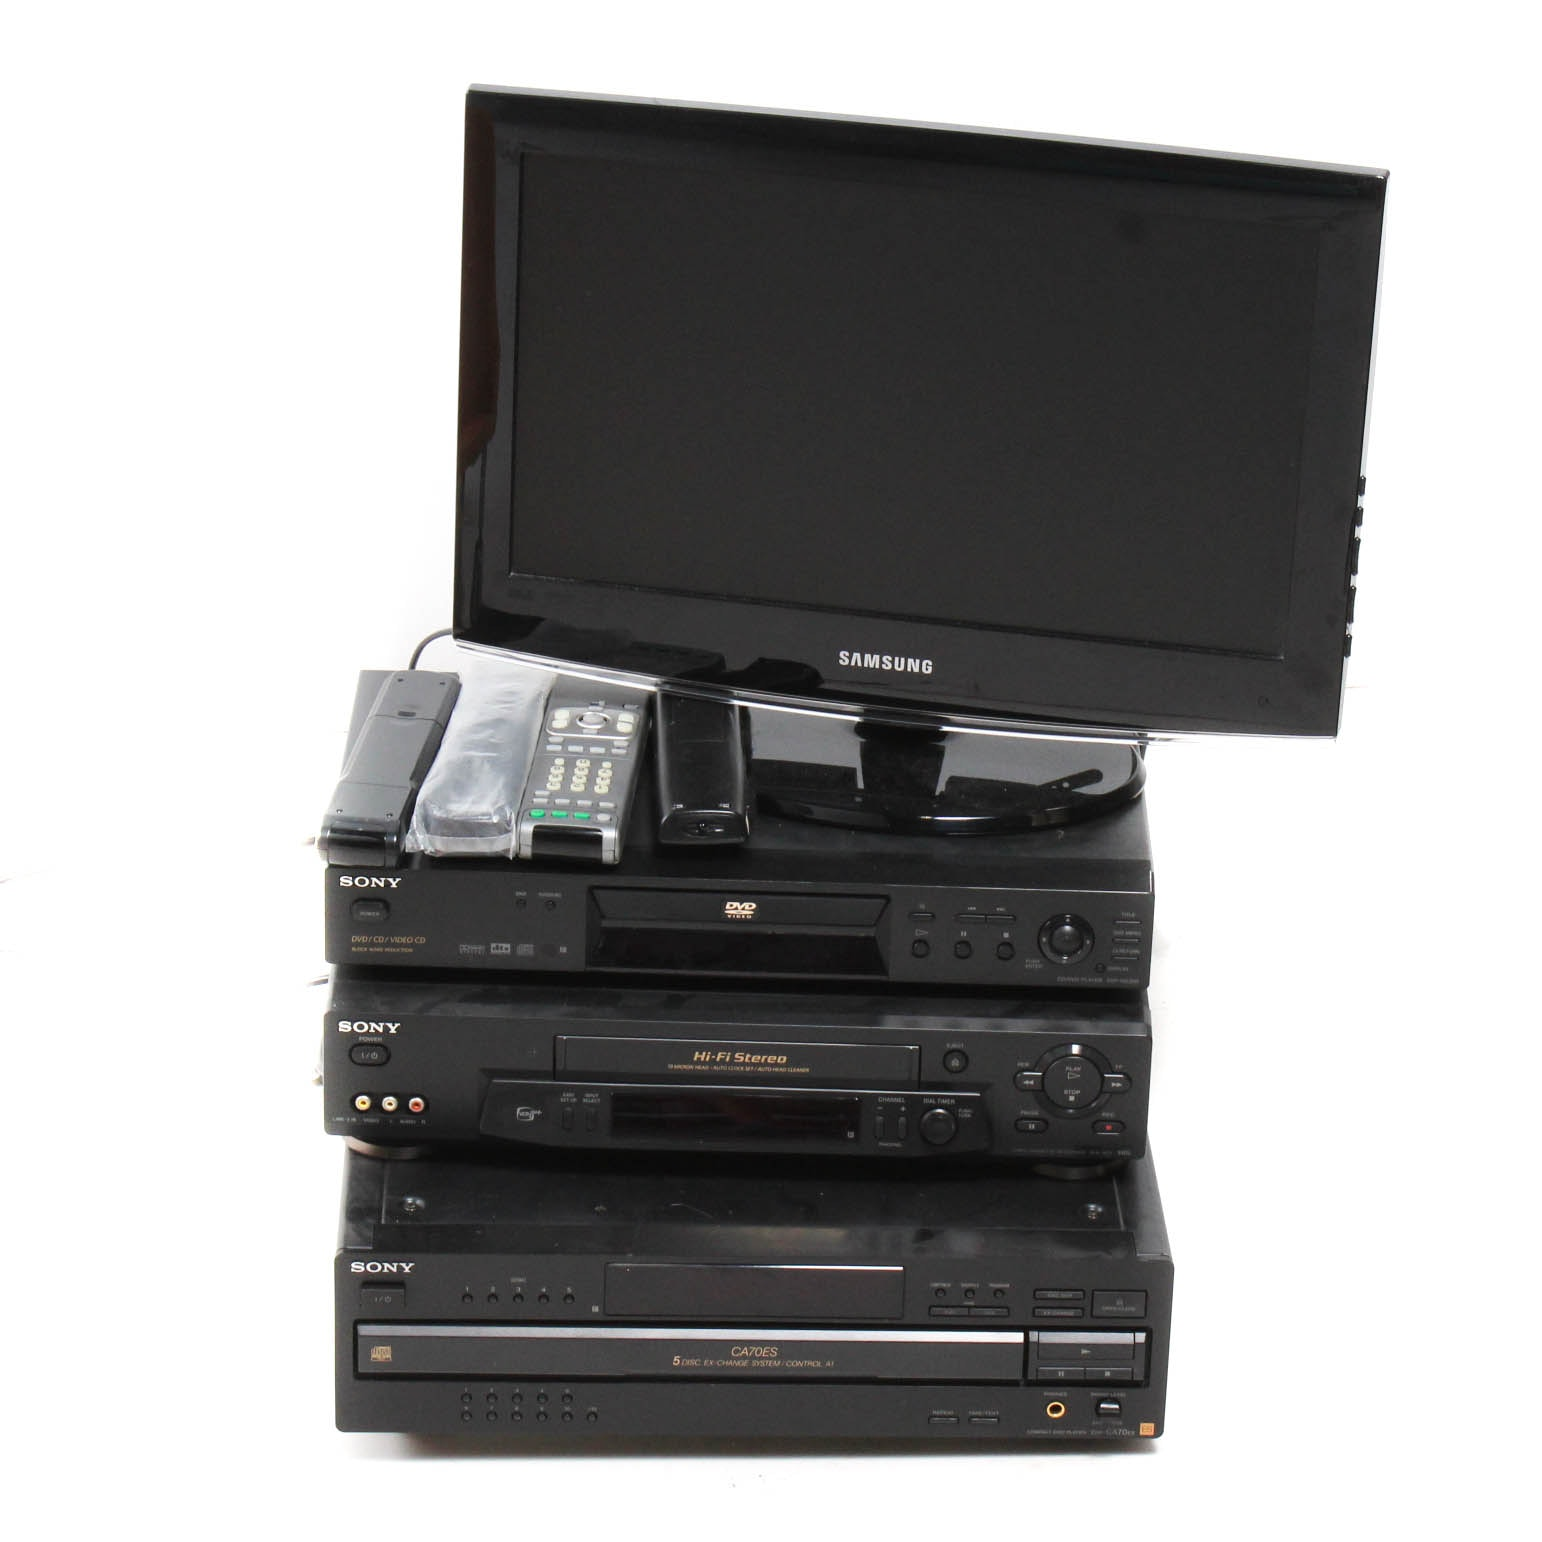 Samsung TV and Sony Audio/Video Components